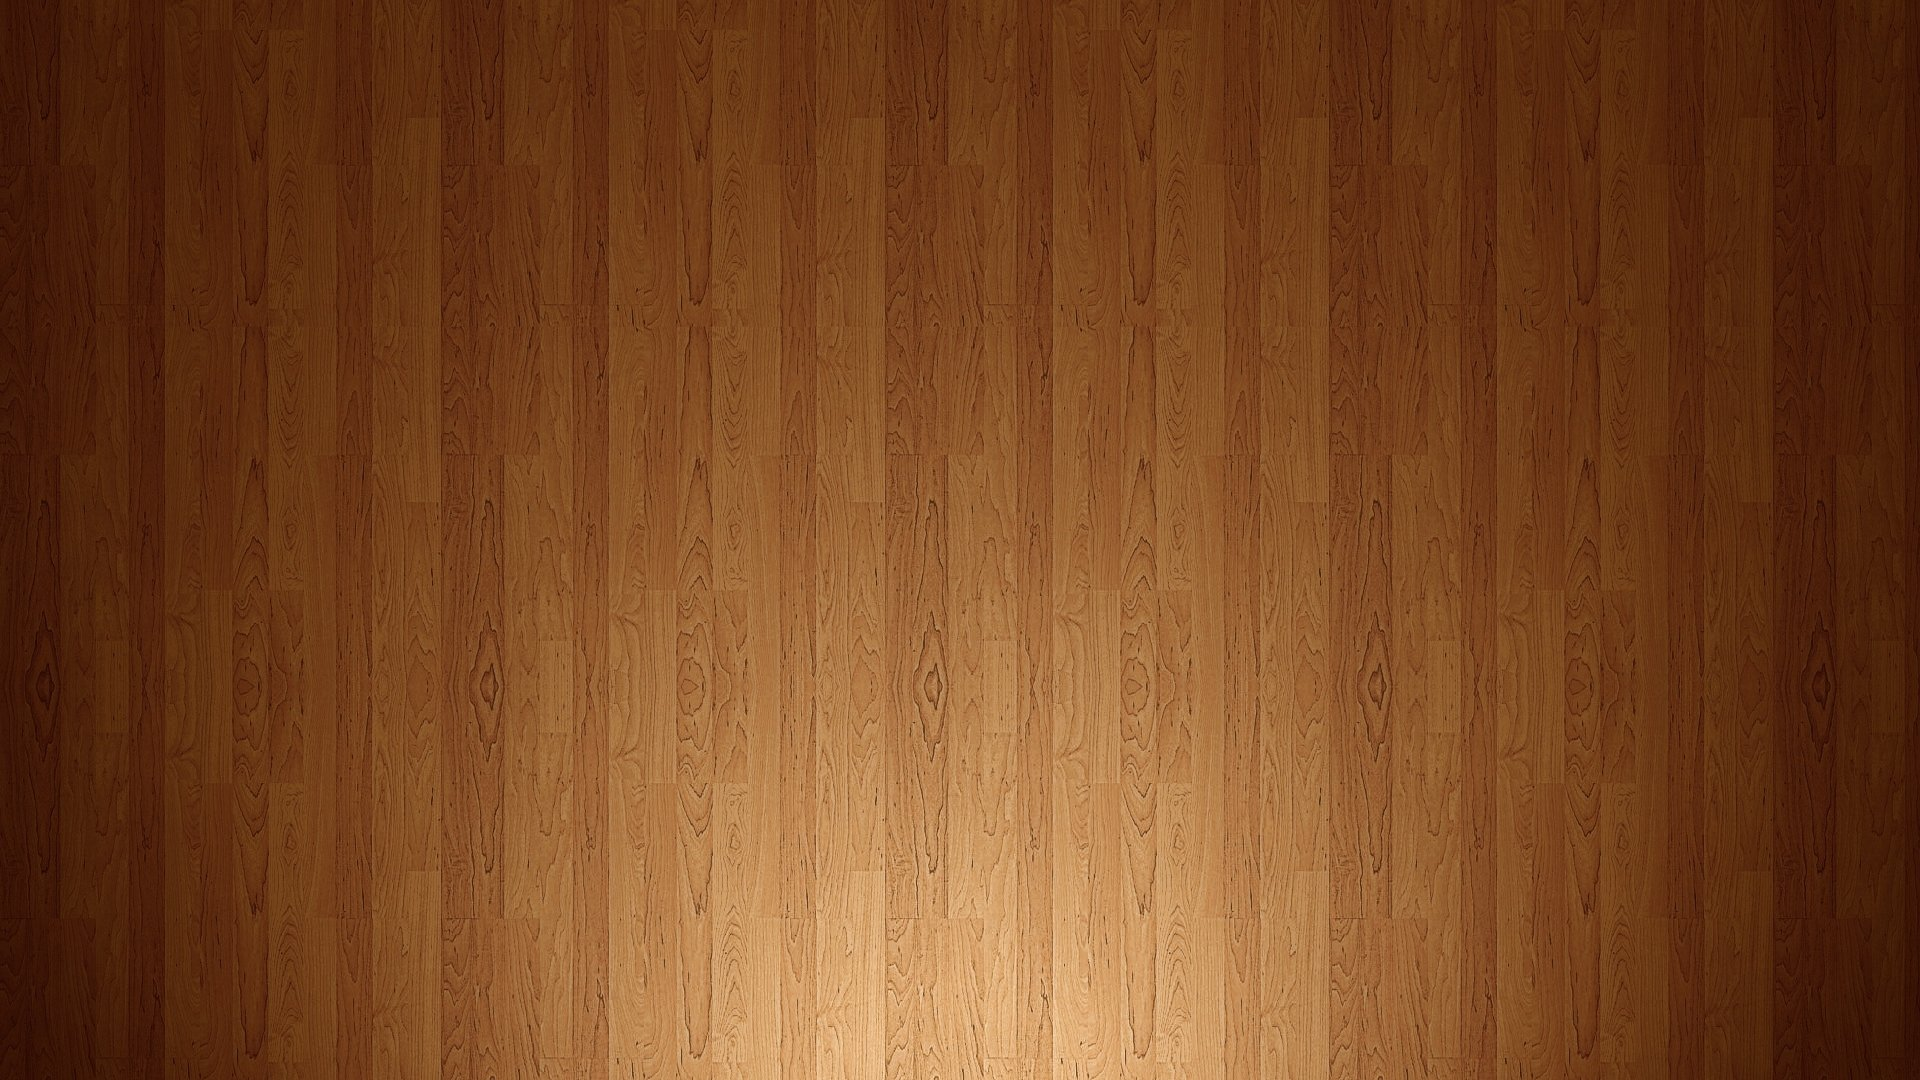 Wood Panels Wallpaper 1920x1080 Wood Panels 1920x1080